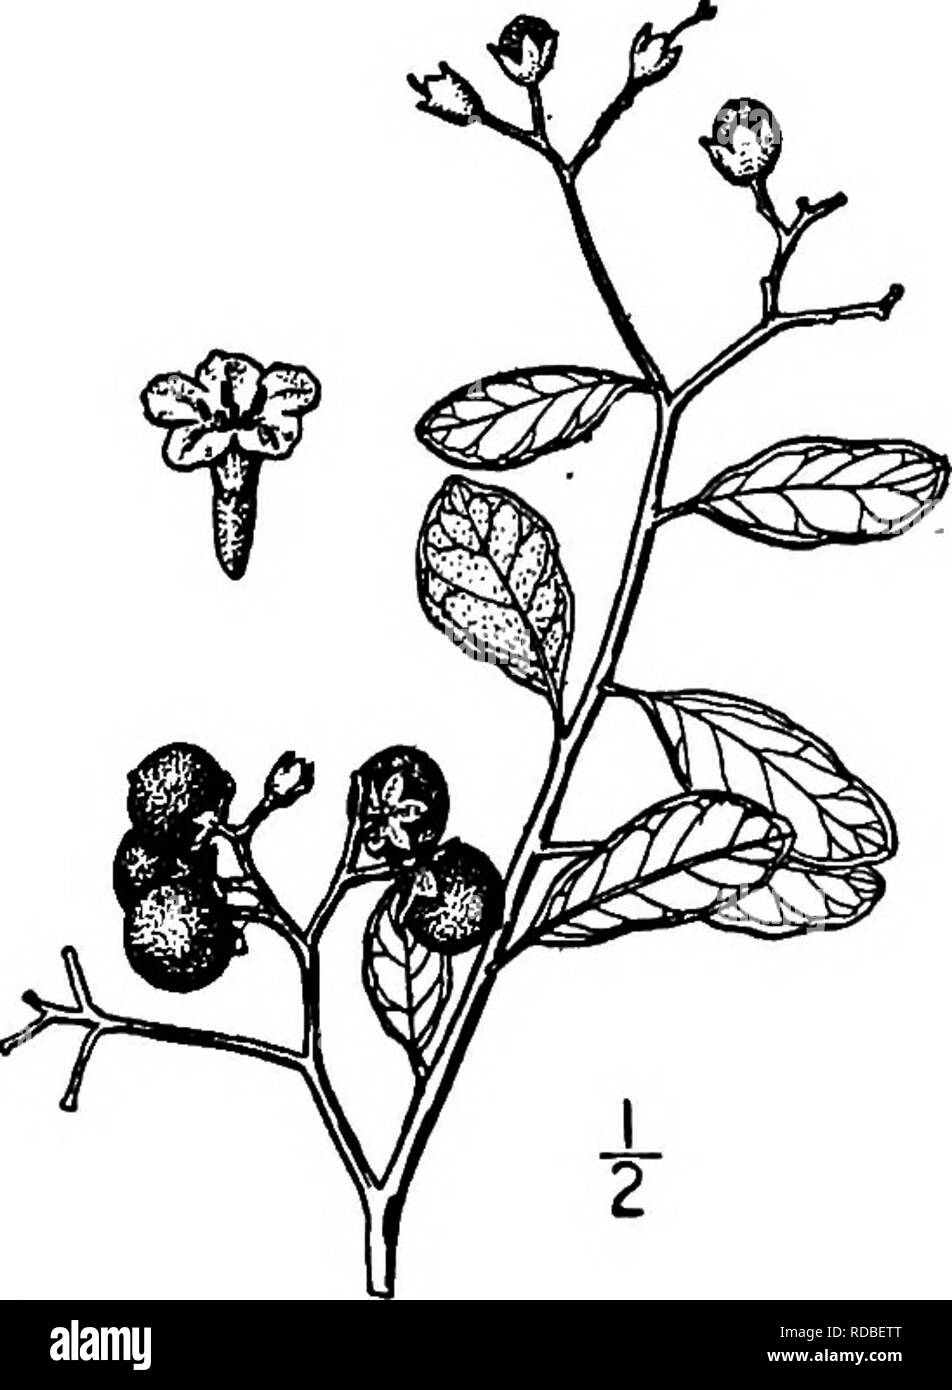 . North American trees : being descriptions and illustrations of the trees growing independently of cultivation in North America, north of Mexico and the West Indies . Trees. Rough-Leaved Strongback 821 11. THE STRONGBACKS GENUS BOURRERJA PATRICK BROWNE OURRERIA is composed of about 18 species of trees or shrubs, abun- dant in the West Indies, and peculiar to tropical America, 2 of which enter our area on the Florida Keys. They have alternate evergreen leaves. The white flowers are in terminal corymbose cymes; the calyx is bell-shaped, persistent, sometimes accres- cent, 2- to 5-lobed; the cor - Stock Image